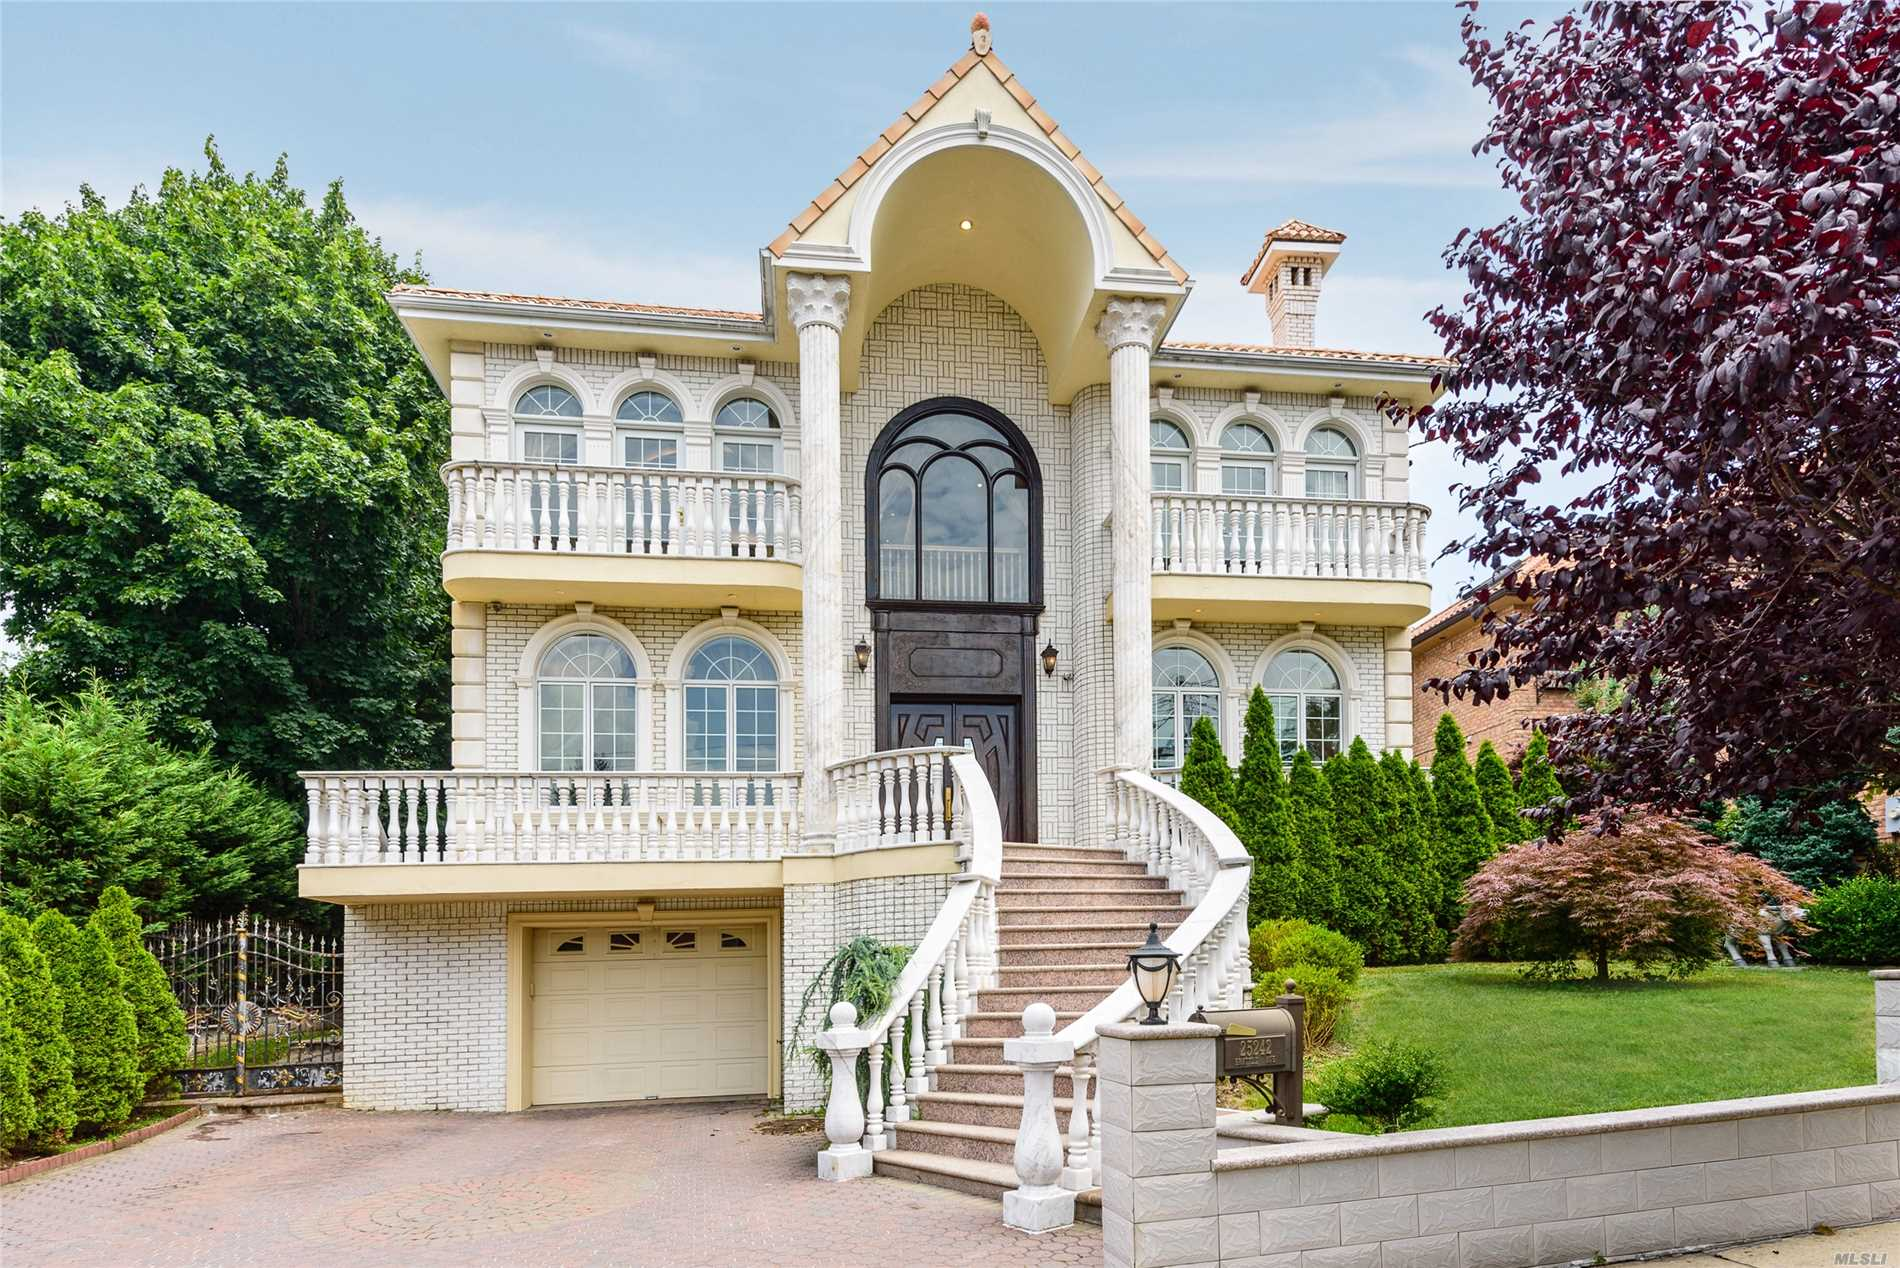 Spectacular Custom Built Colonial W/ I-Beam Structure And Luxurious Marble Exterior. This Home Features Over 10,000 Sq Ft Of Living Space, Built By The Builder For His Family. Gourmet Eik W/Custom Pocket Doors. 2 Over Sized Master Suites W/ Balconies. 3 Br's W/ En Suite Full Bath's & Balconies. Rare 12' Ceiling Basement With Den/Gym/Spa Bath & Much More! Situated In The Heart Of Little Neck Hills!